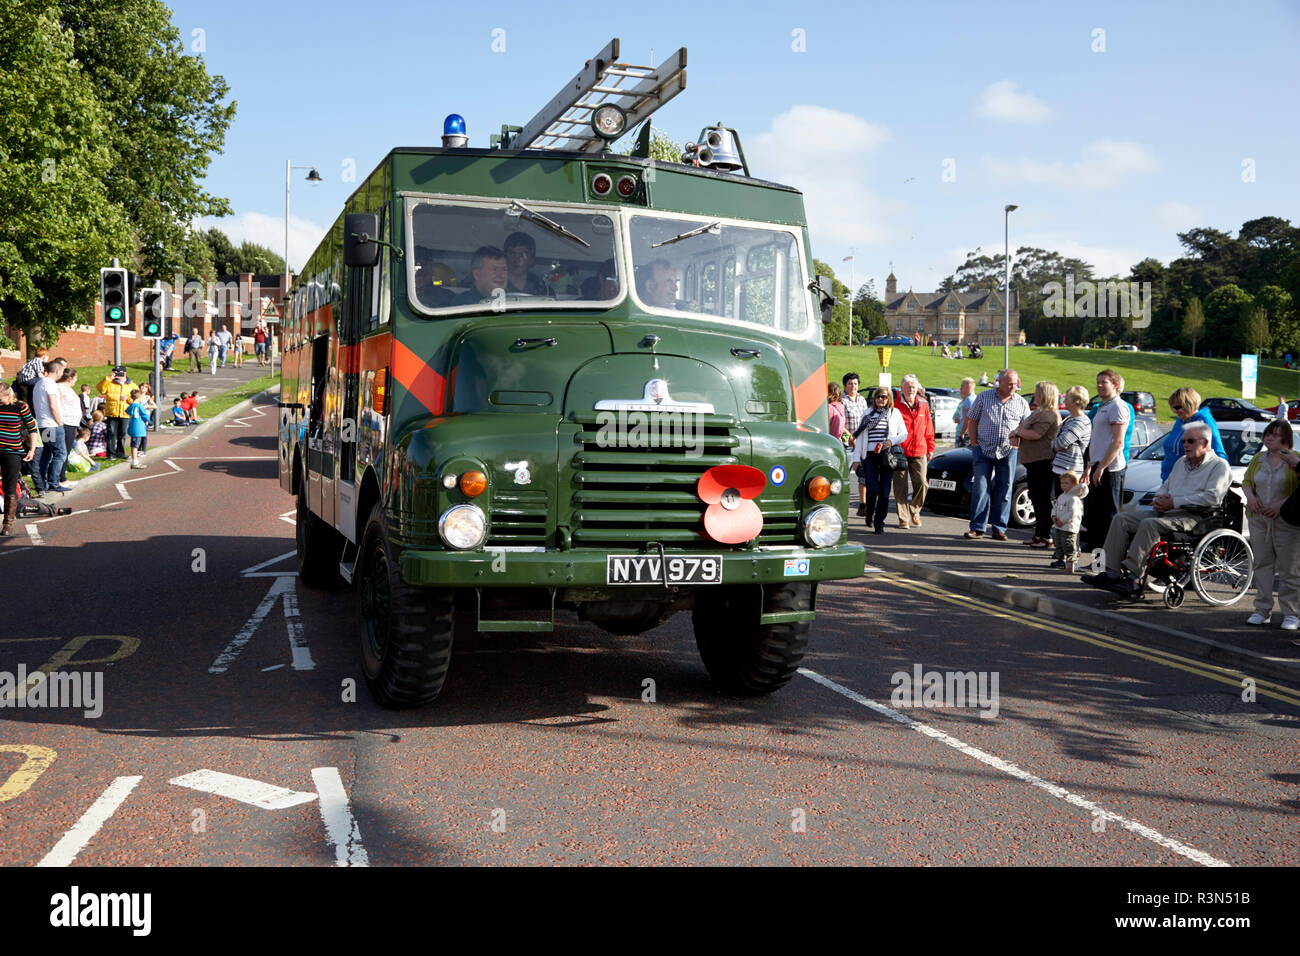 green old historic military bedford green goddess fire engine taking part in a vintage historic car rally in northern ireland - Stock Image